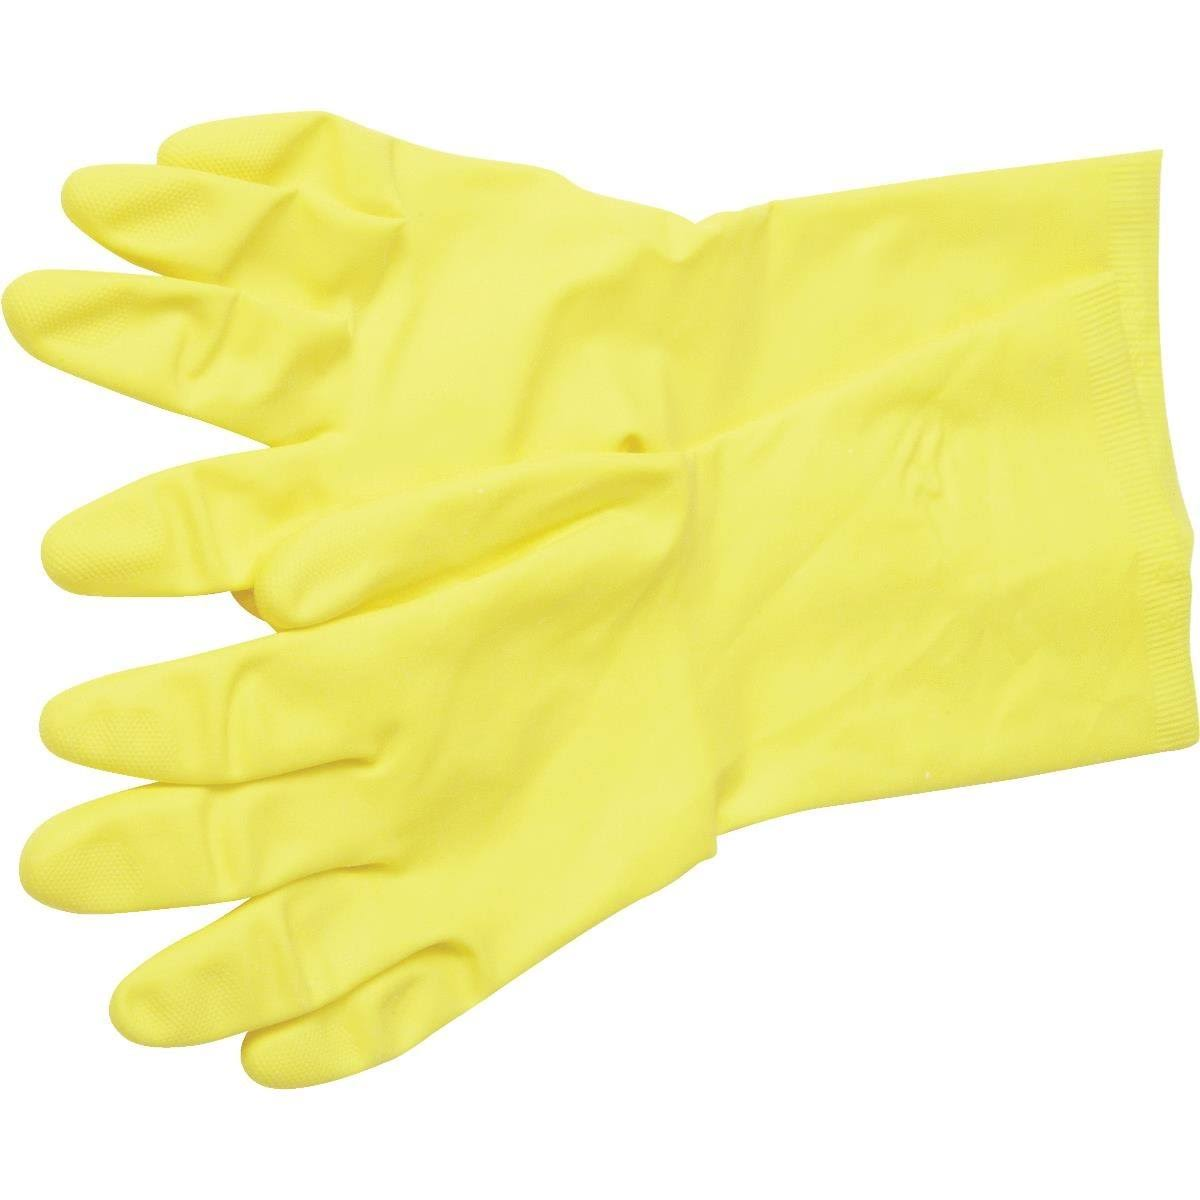 Do It Latex Rubber Glove - 2X Large